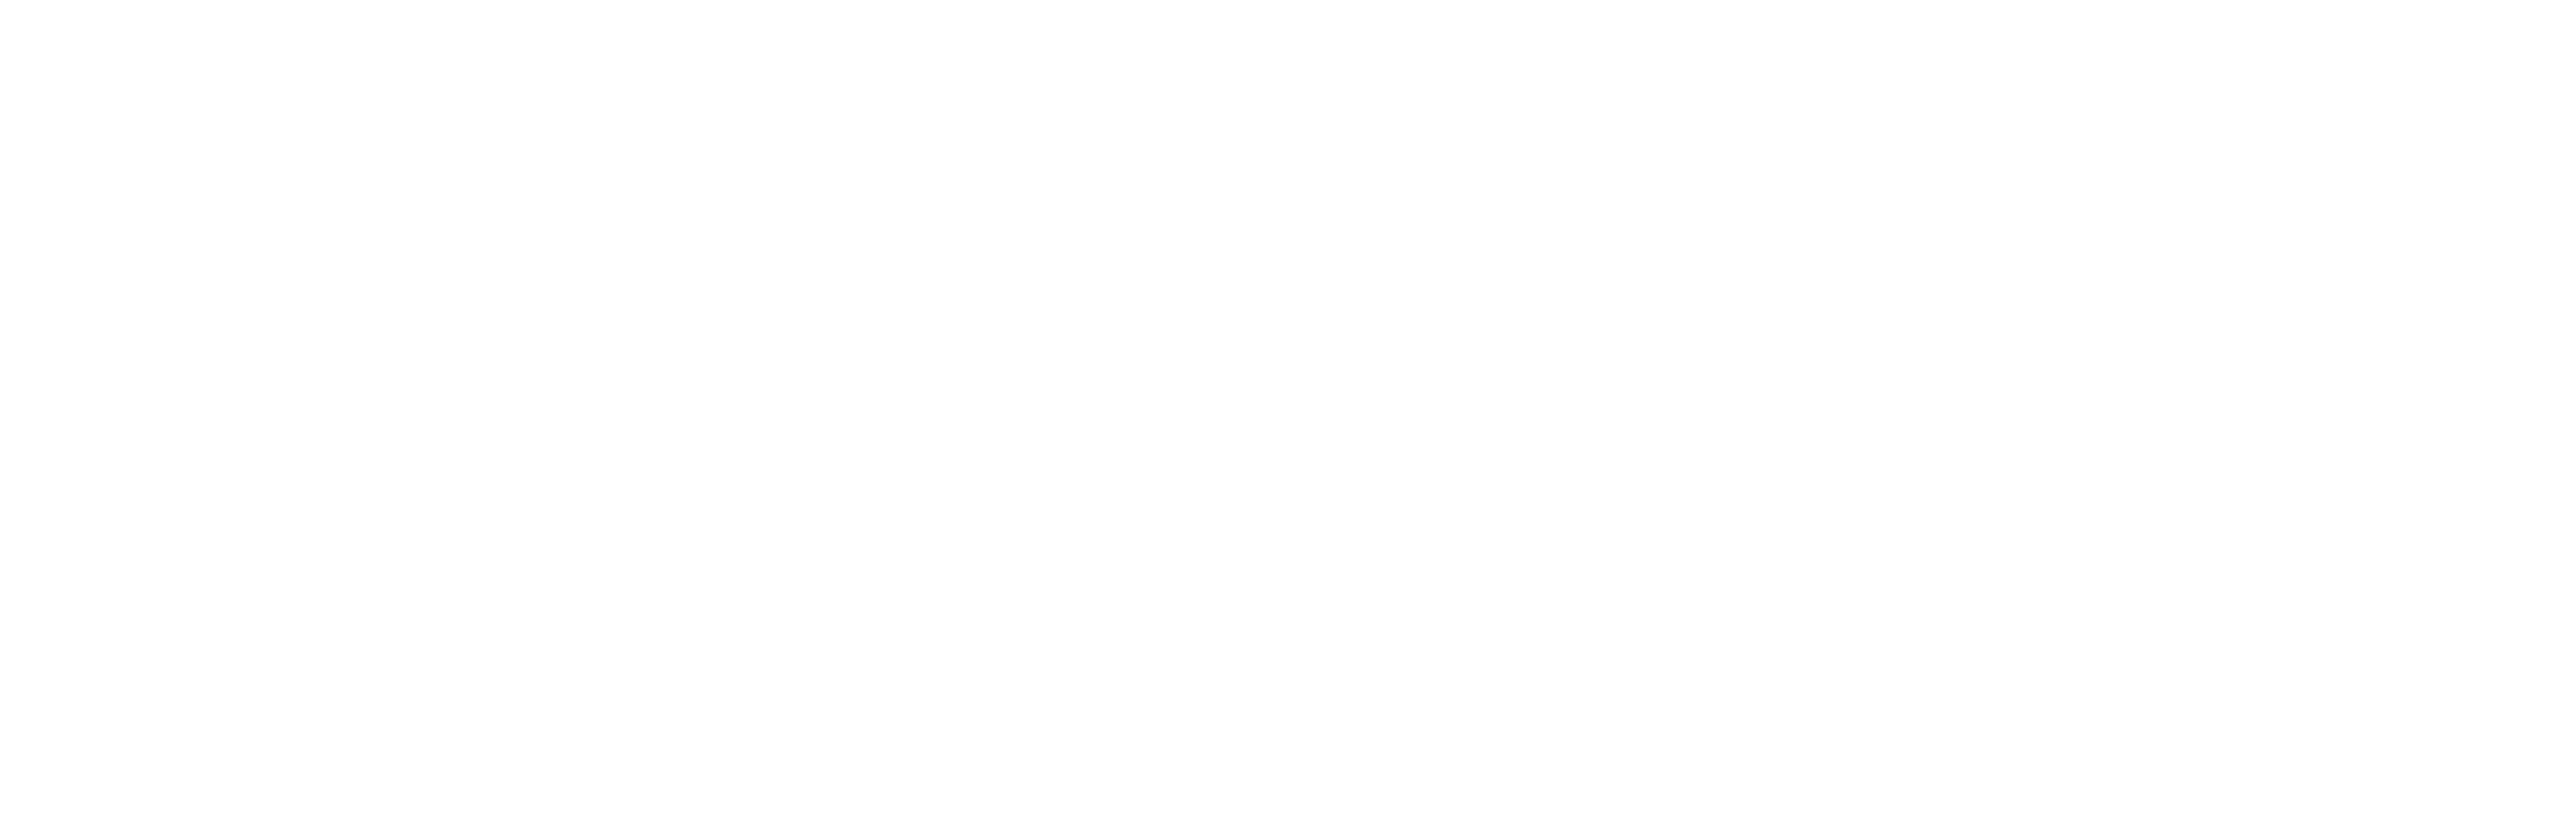 Earned Run Real Estate